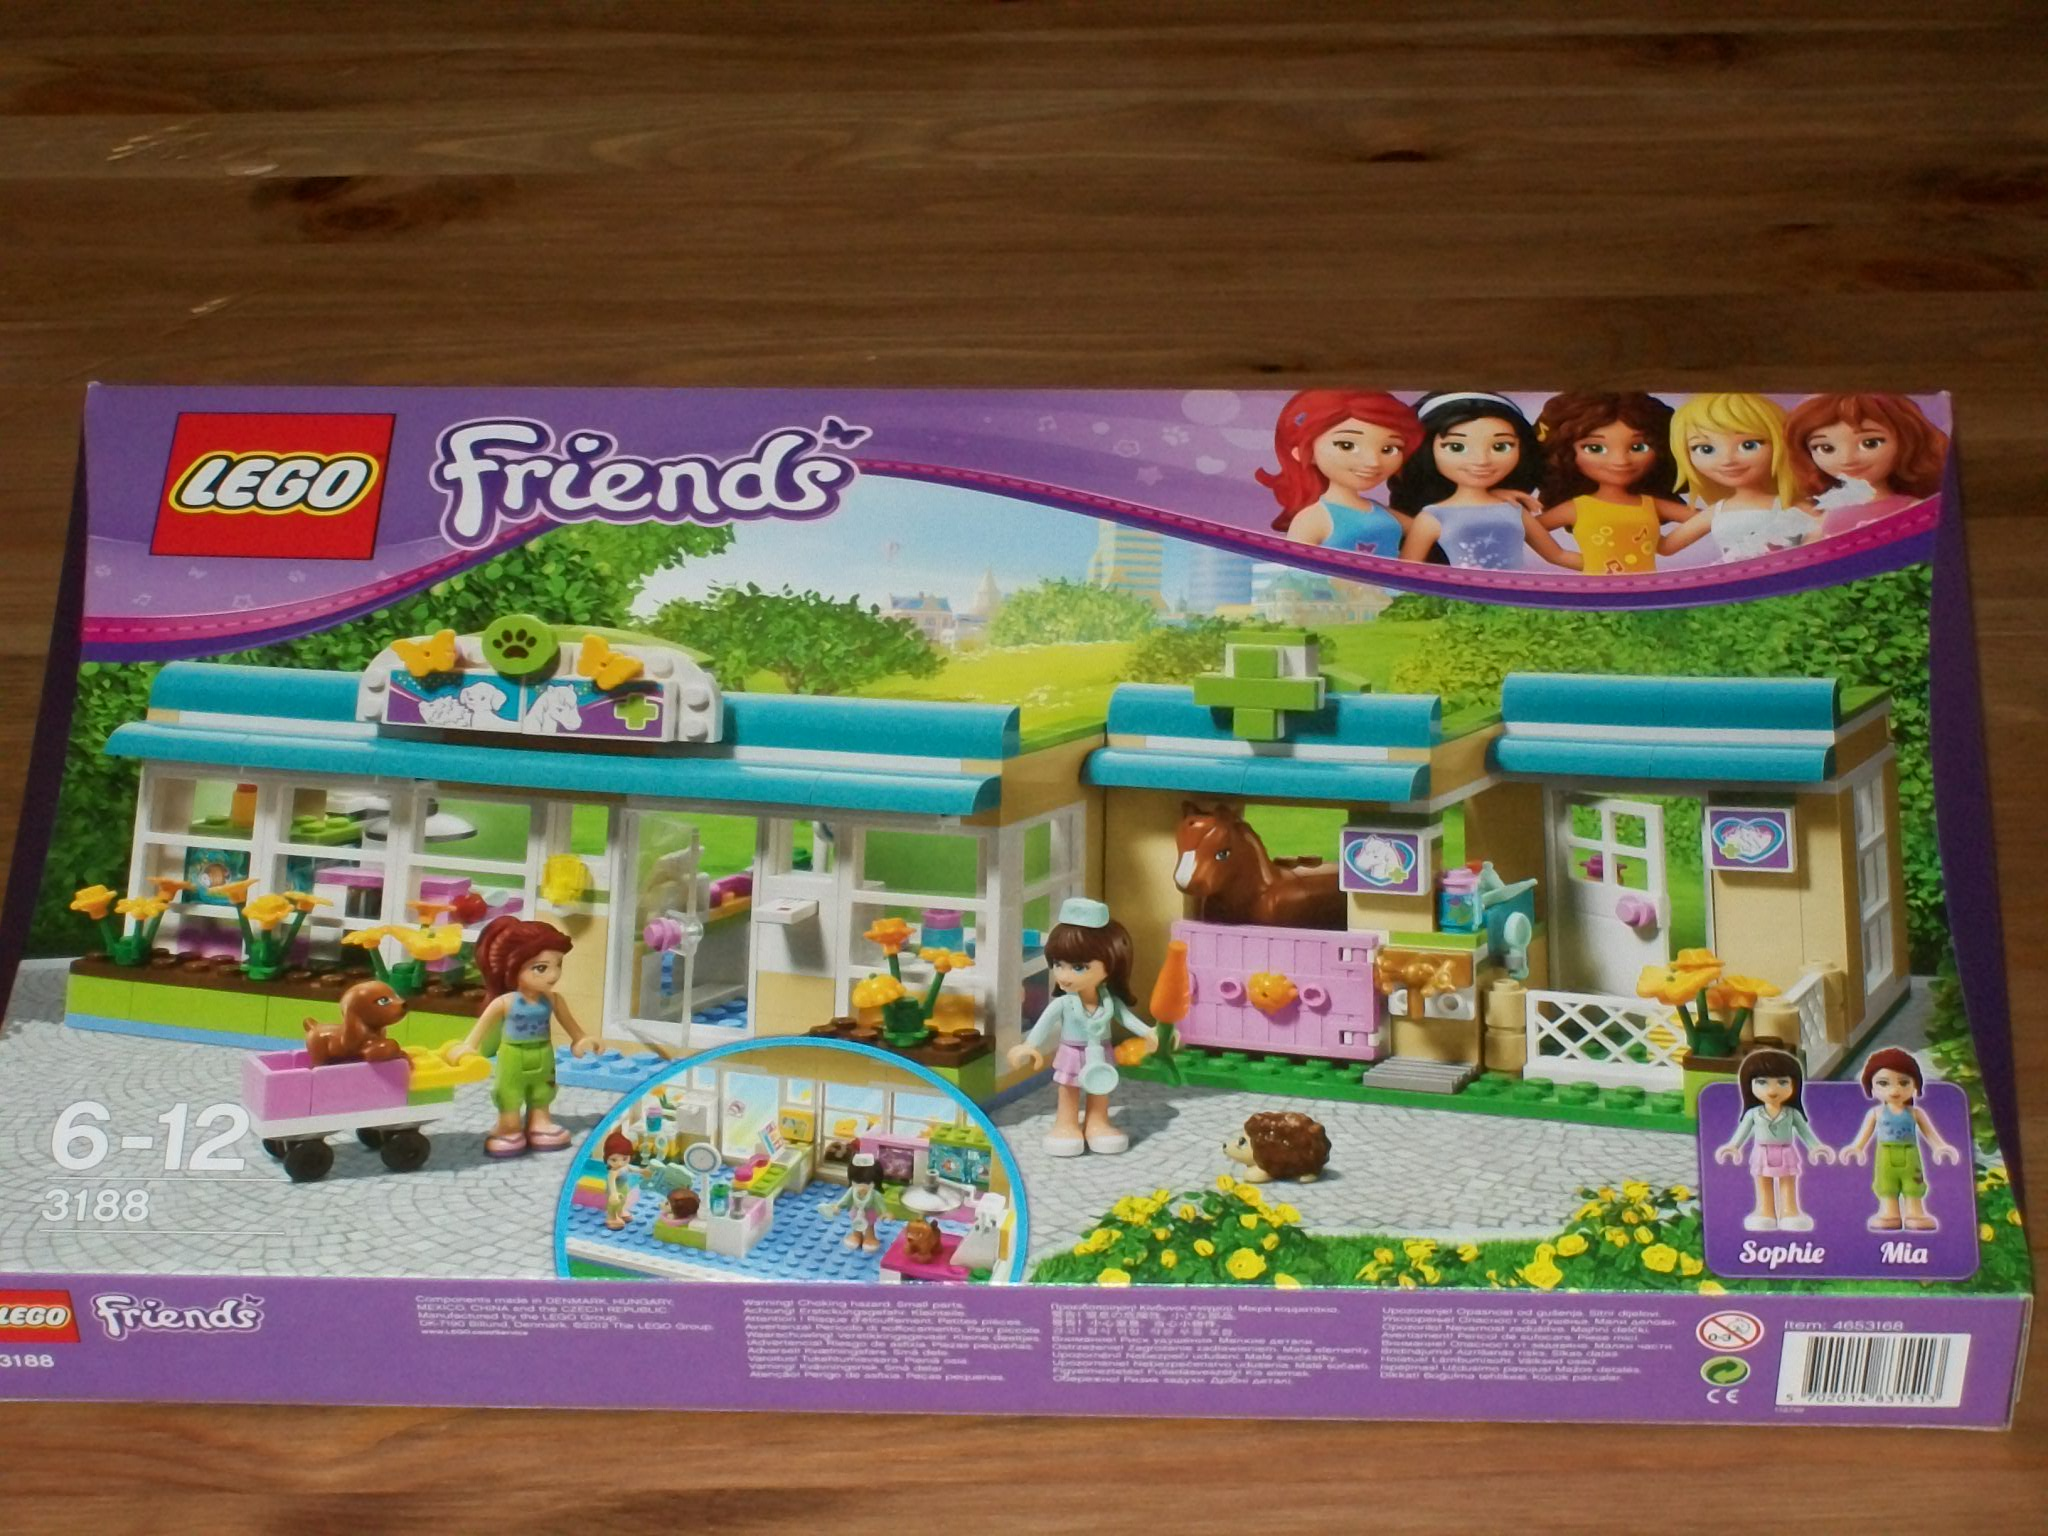 Favori Lego 3188 (Friends): Revue du set – Lego(R) by Alkinoos UF26